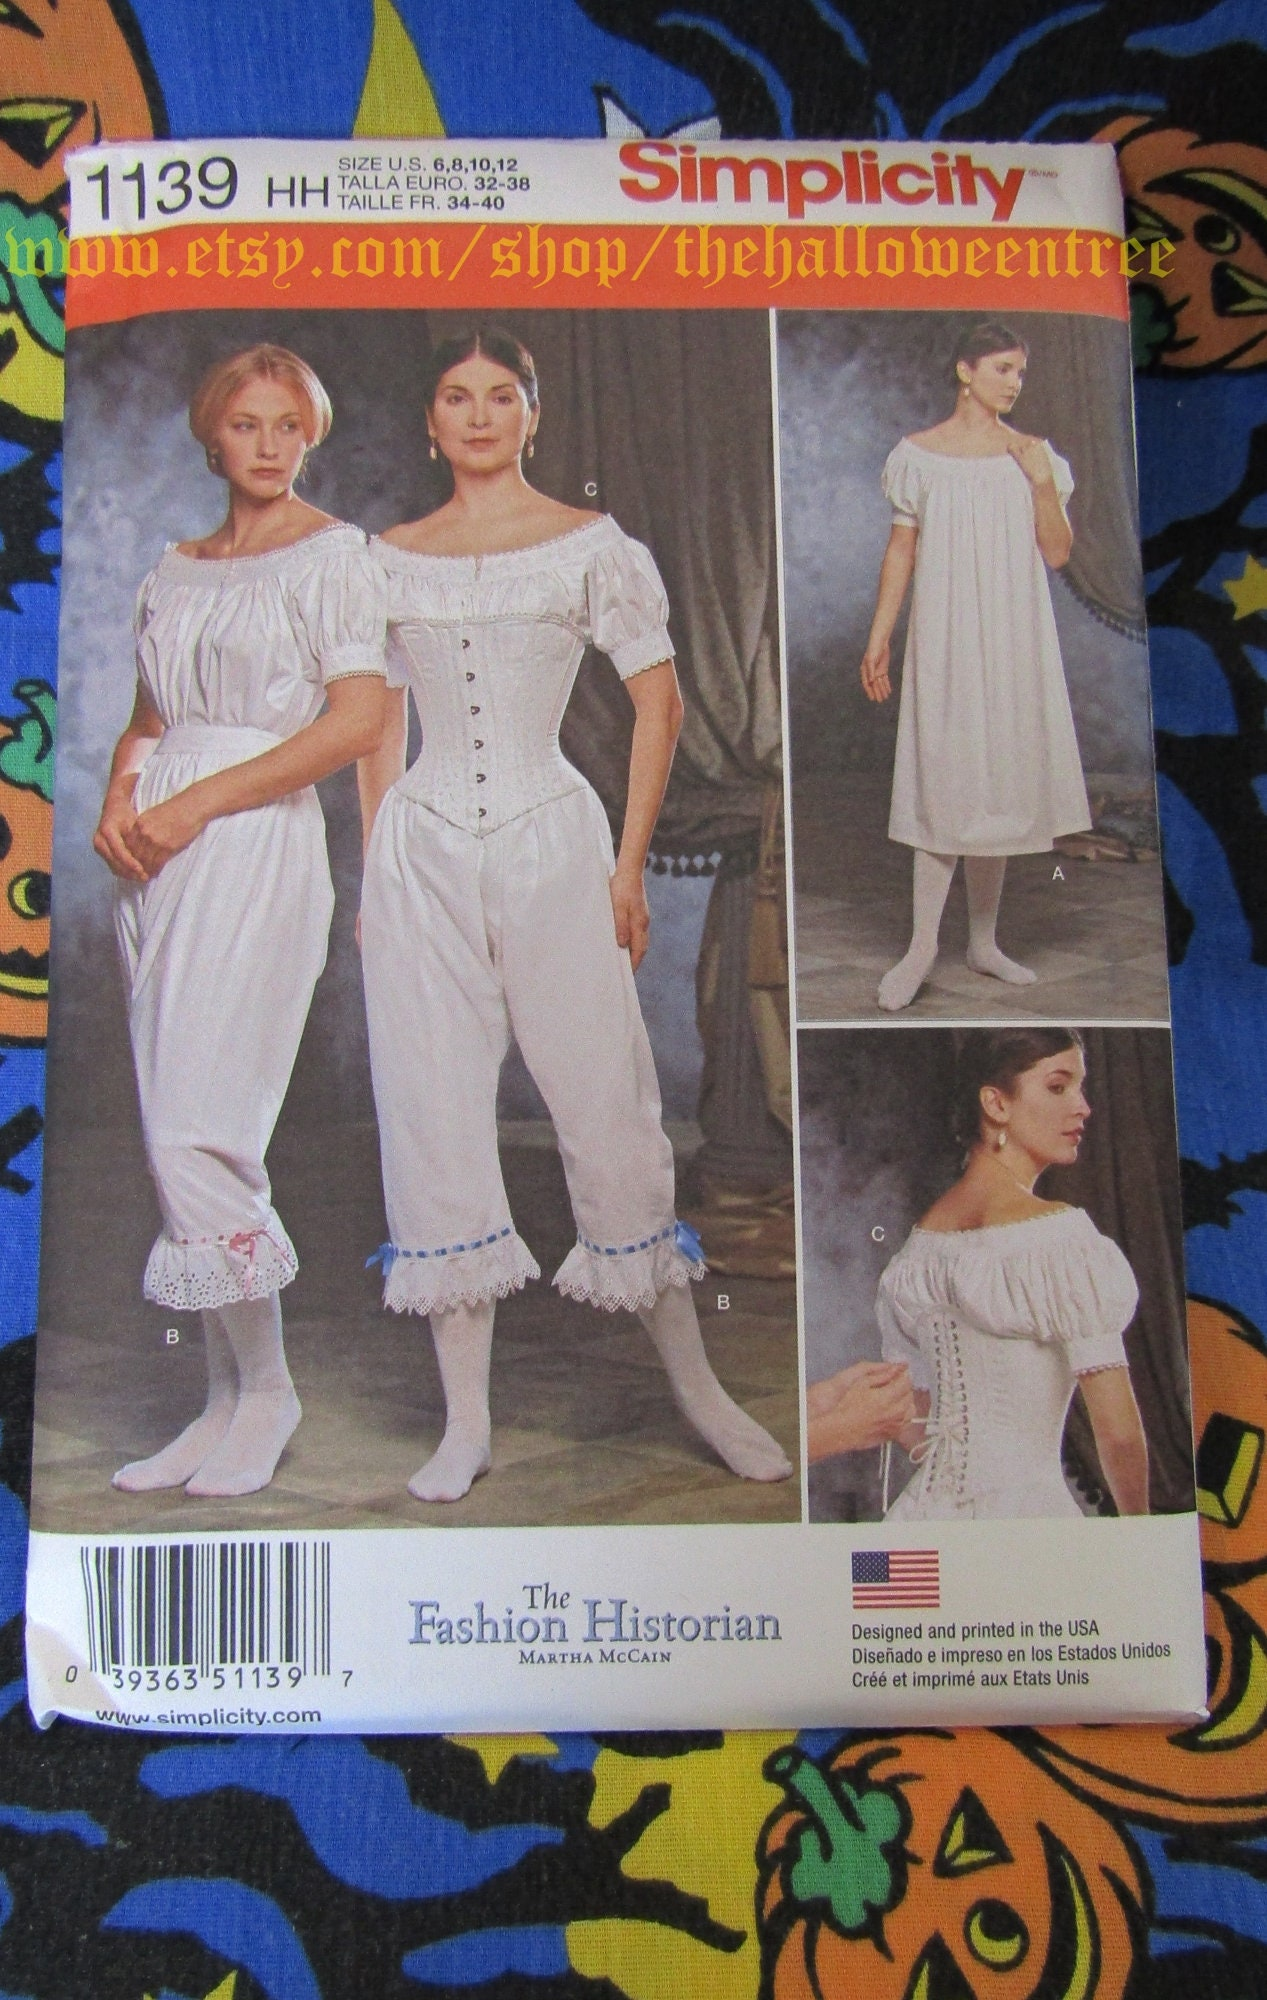 Simplicity 1139 Womens Civil War Historical Costume Sewing Pattern Sizes 6-12